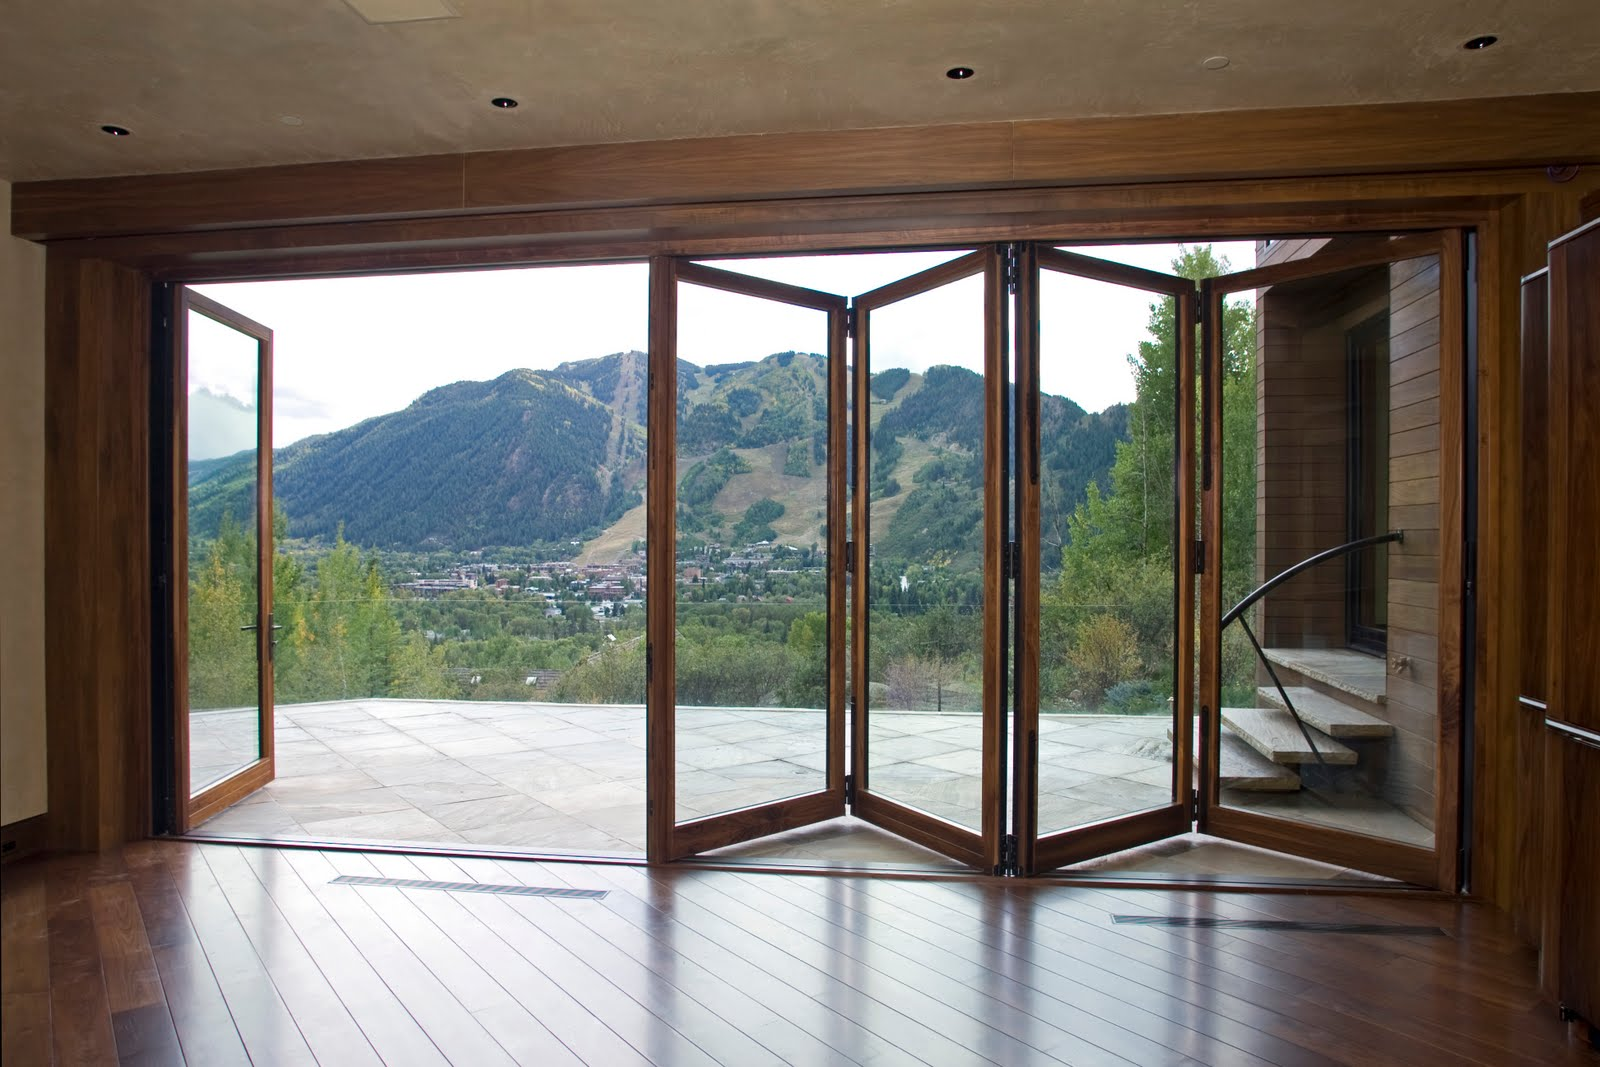 Grabill windows and doors product highlight folding doors for New windows and doors